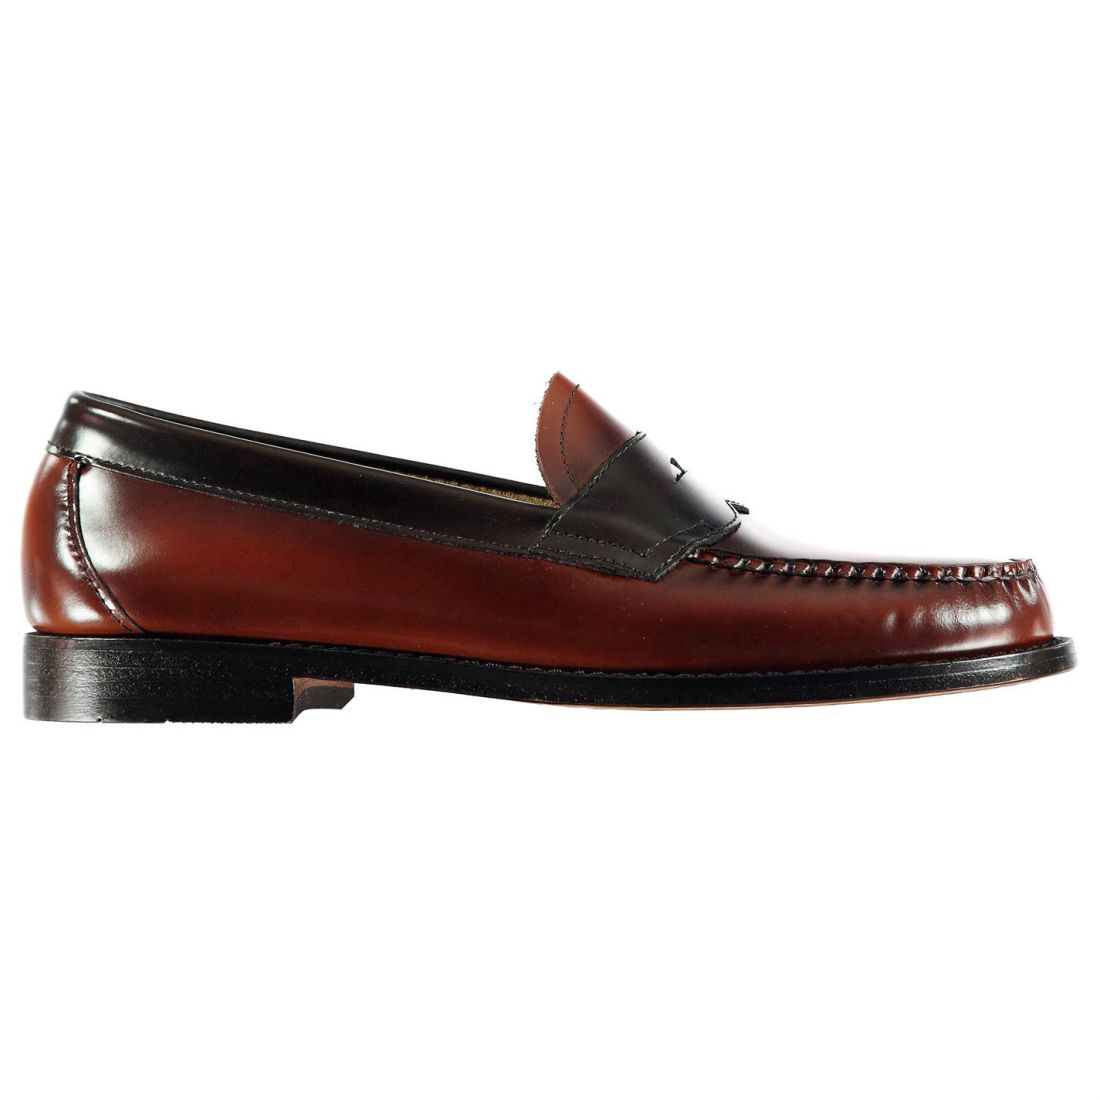 d18e04f4127 Image is loading Mens-Bass-Weejuns-Logan-Two-Tone-Loafer-Loafers-